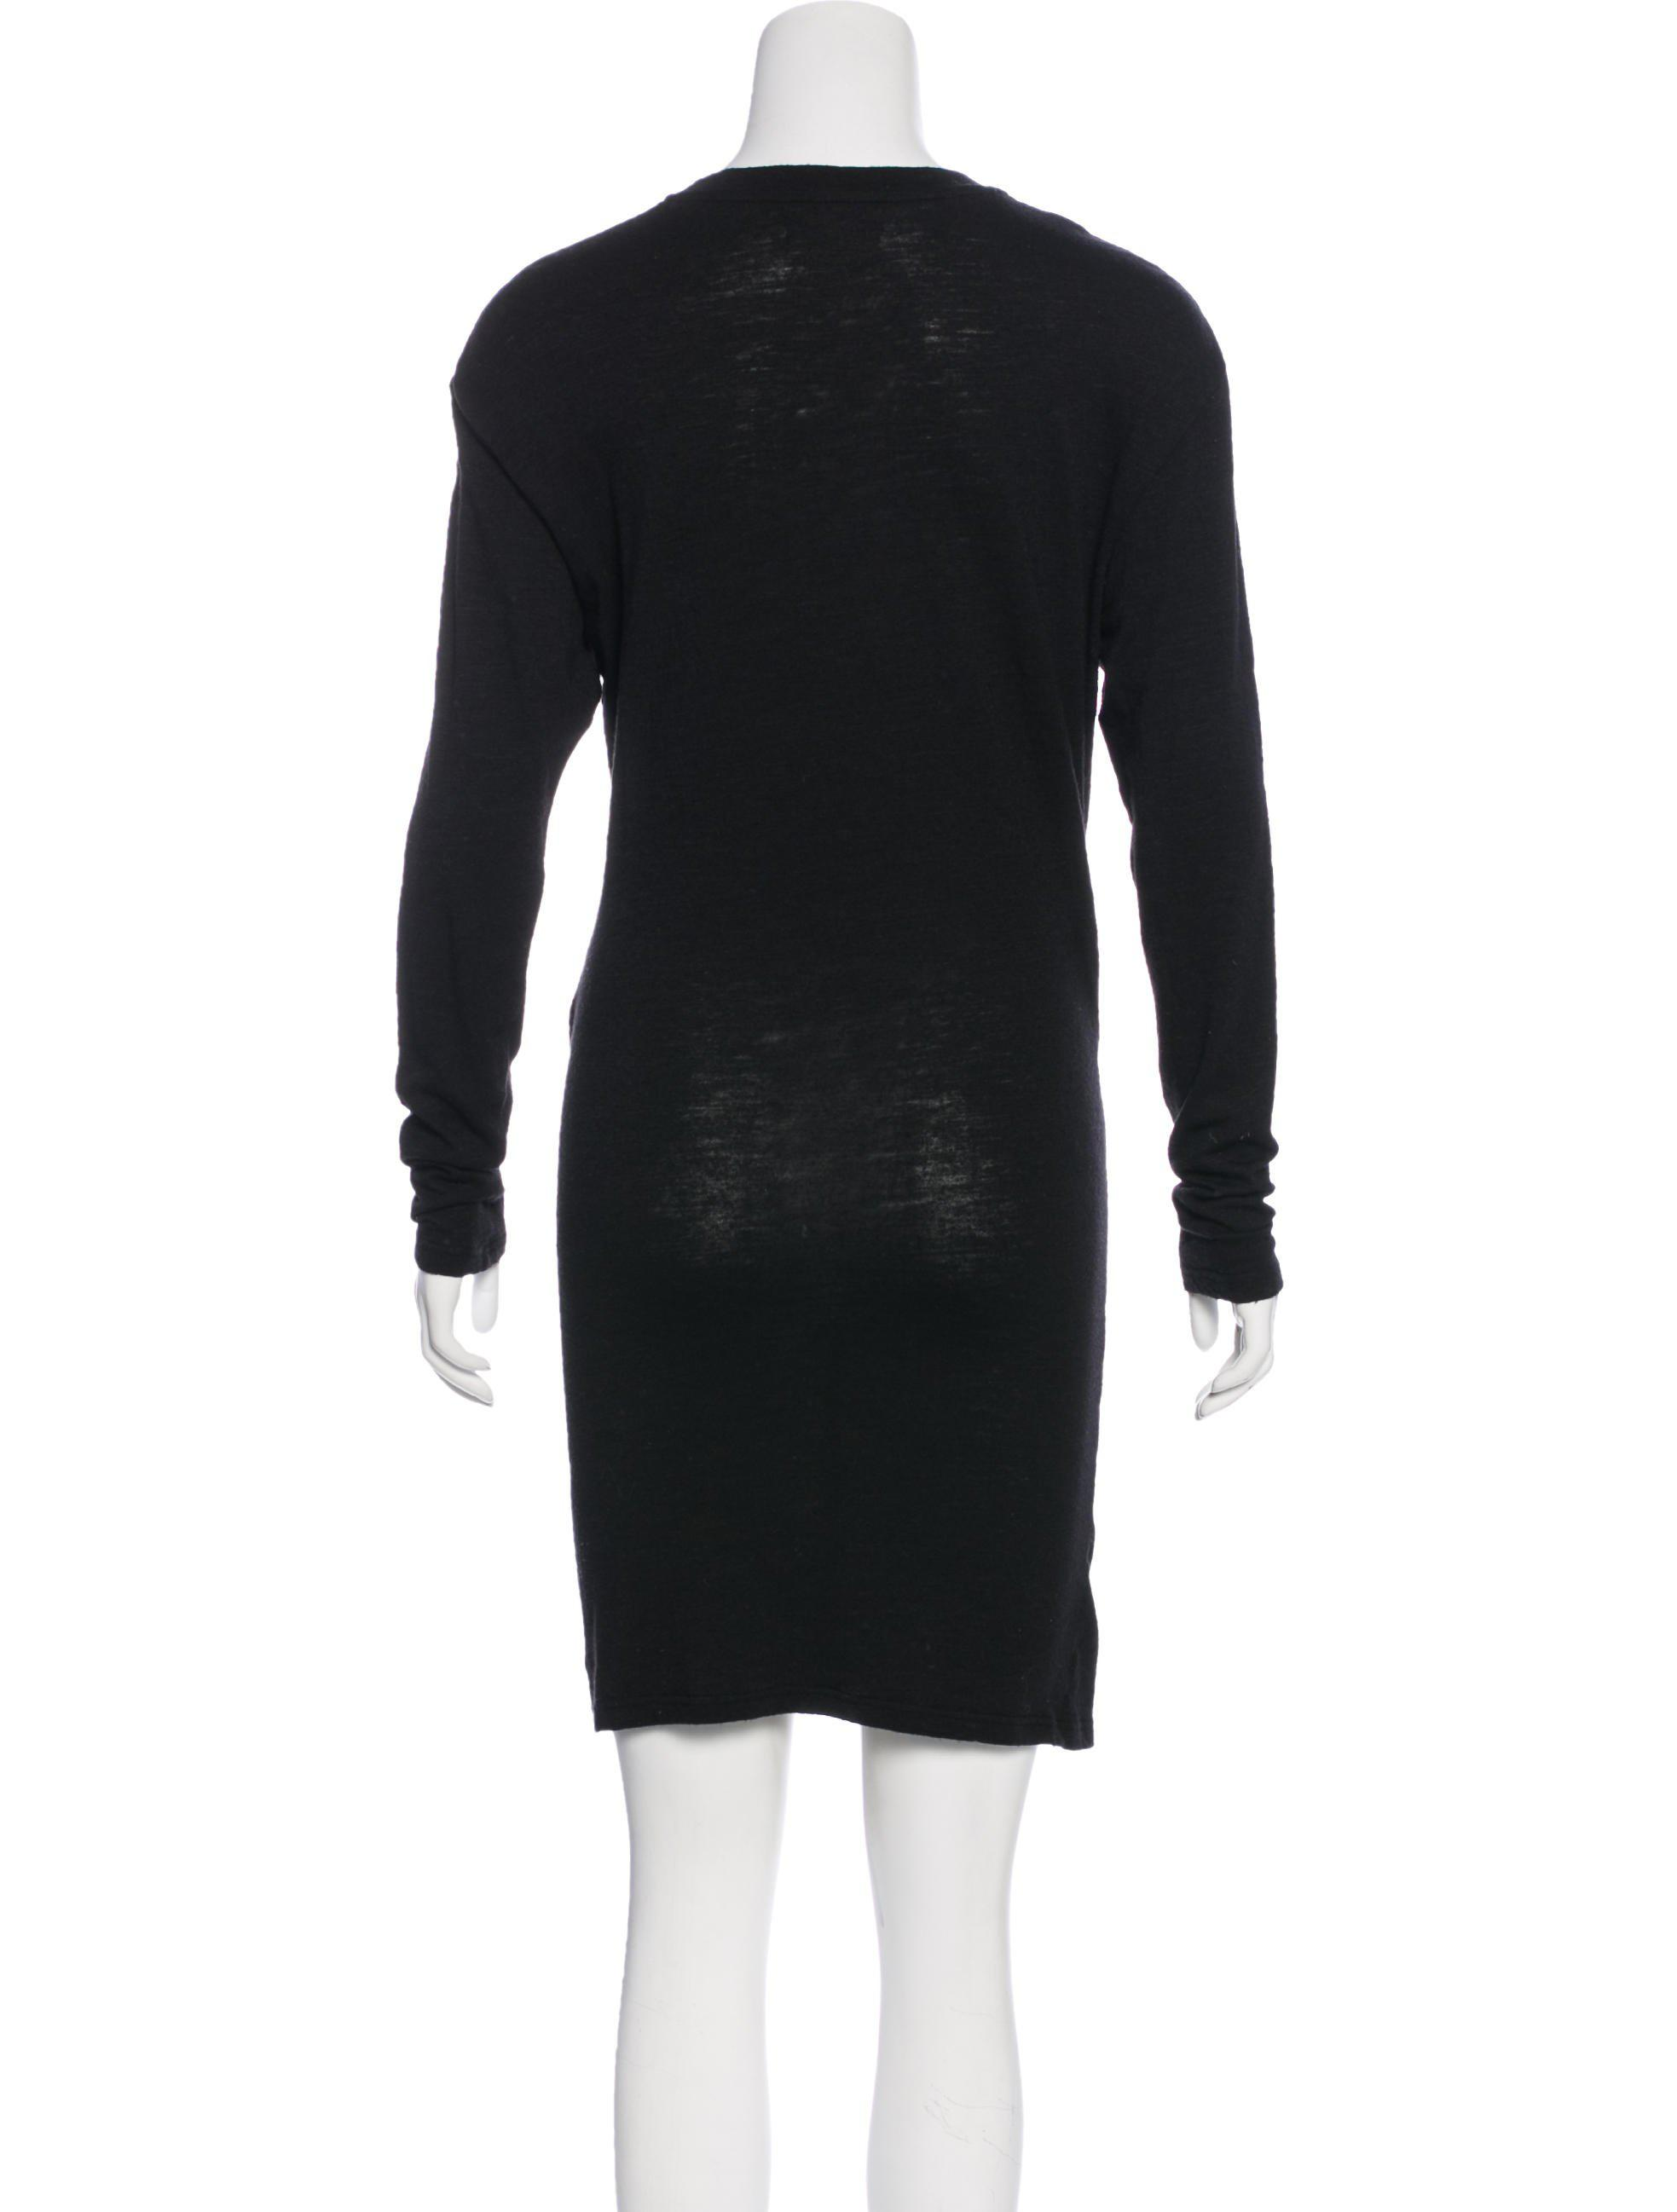 Many Kinds Of Cheap Online Cheap Sale Ebay Étoile Isabel Marant Virgin Wool-Blend Dress Pay With Paypal Sale Online nA1RQK